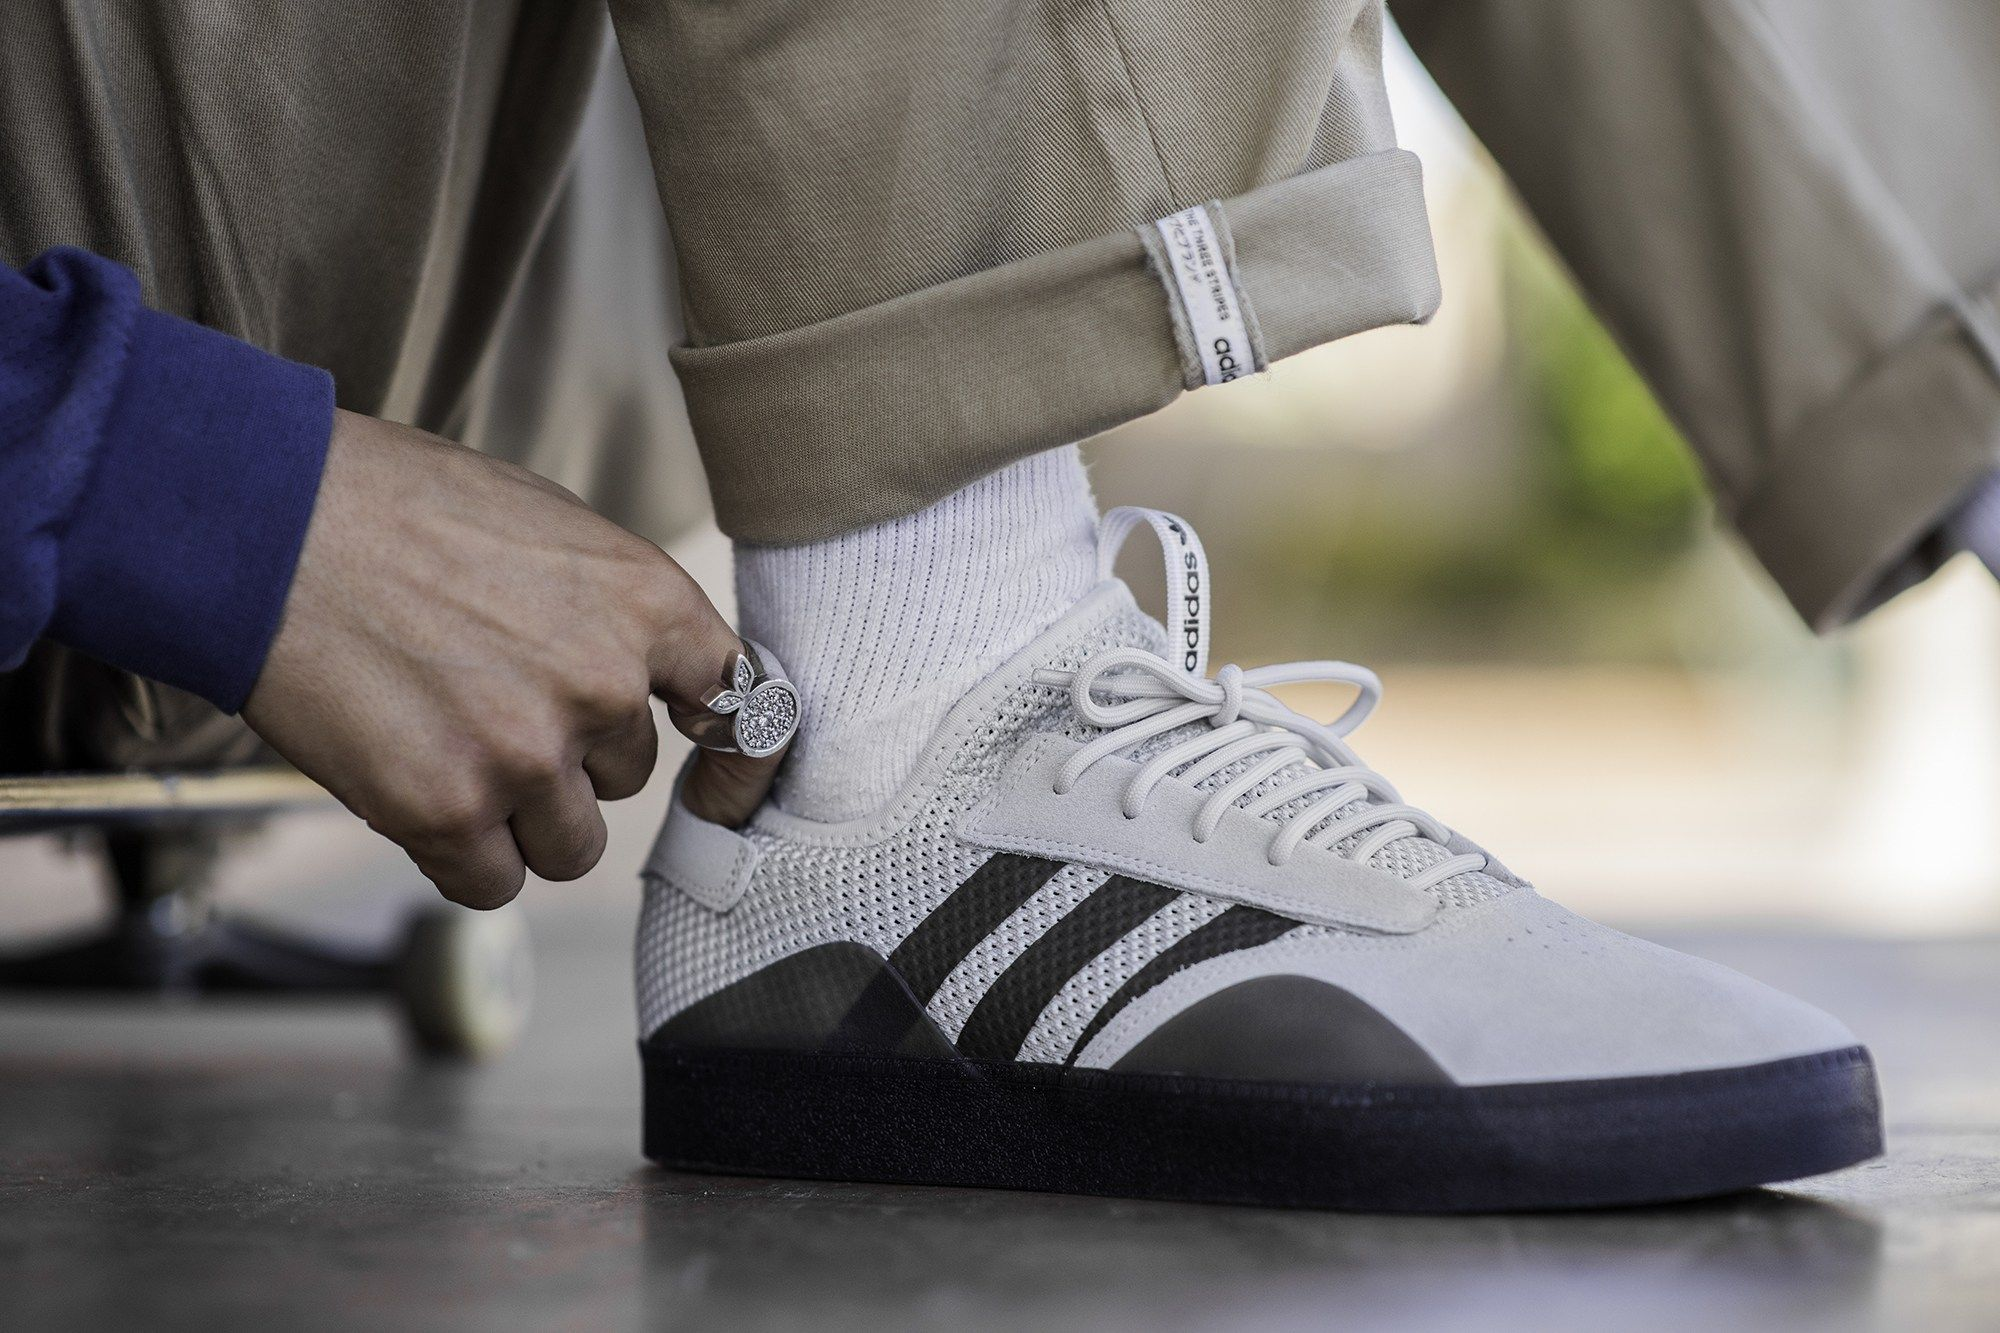 adidas Skateboarding Introduces the 3ST Family with